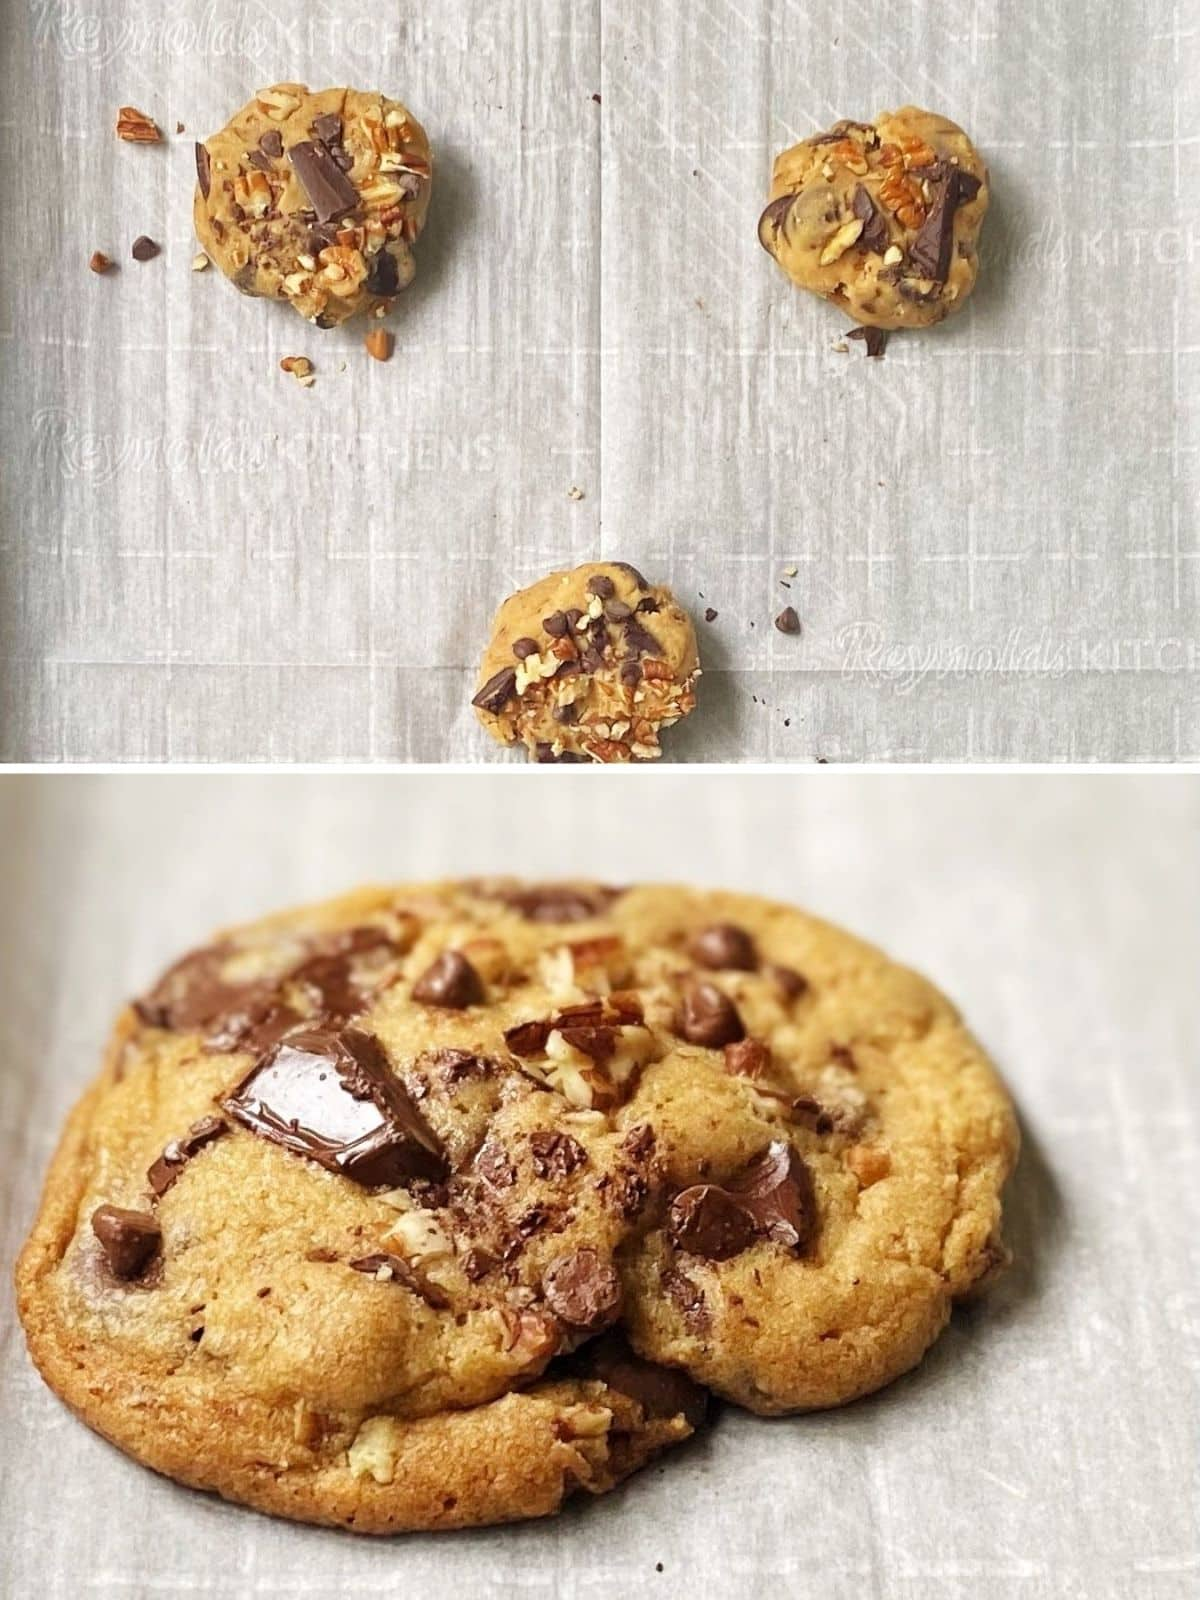 unbaked and baked cookie on baking sheet.